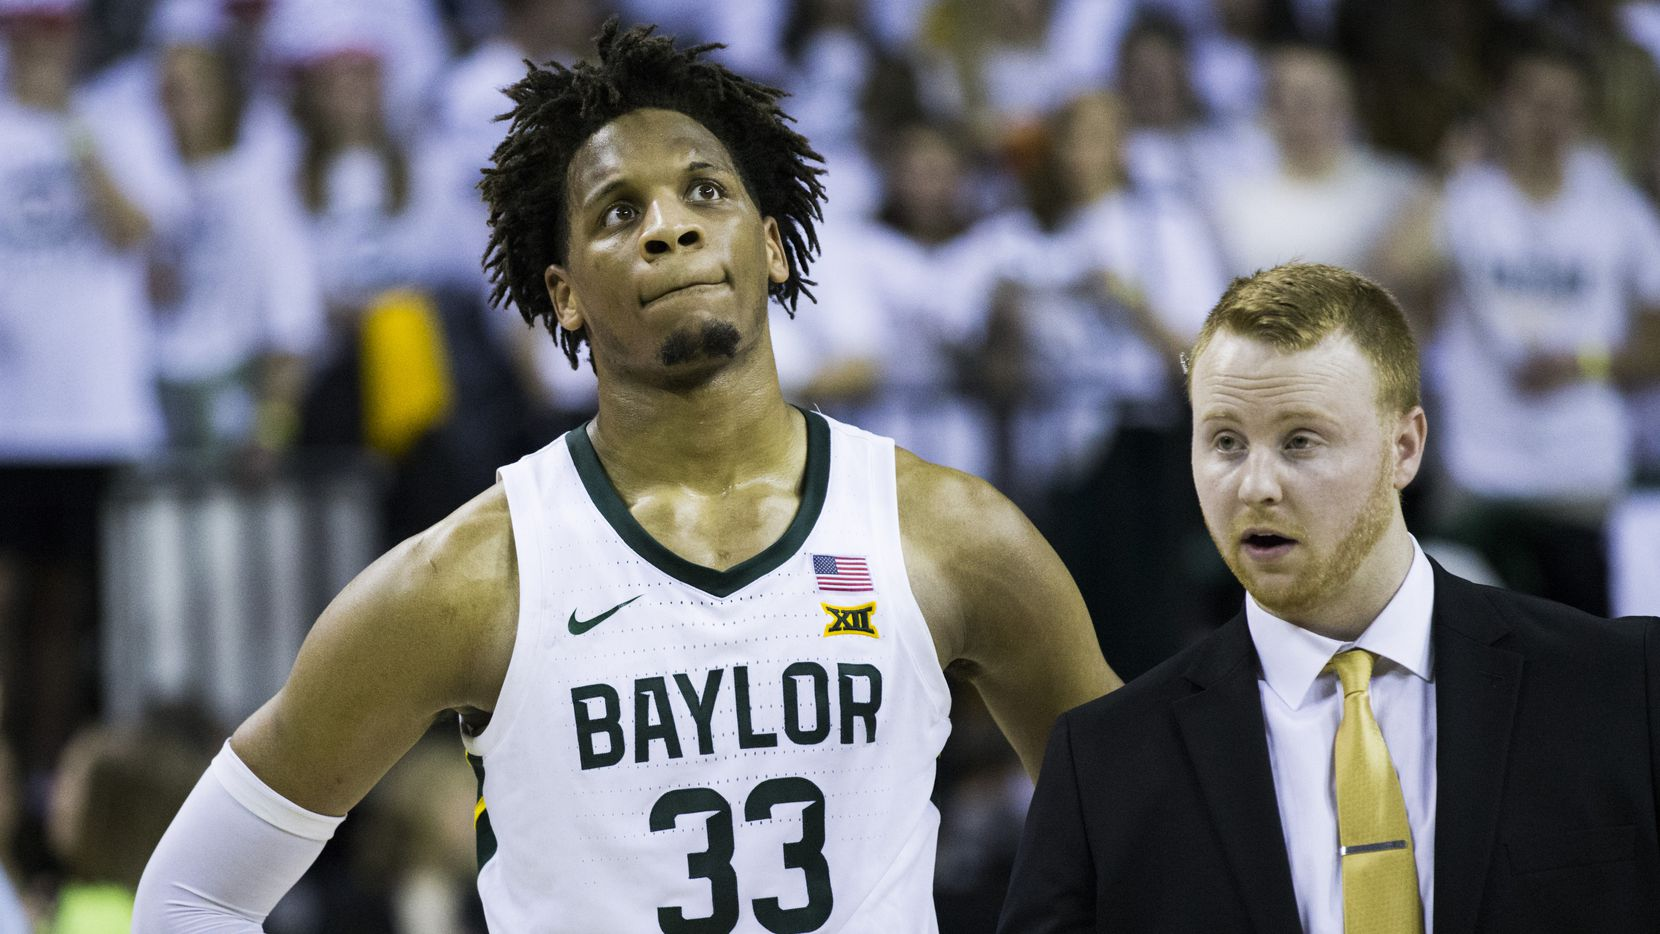 Baylor Bears forward Freddie Gillespie (33) reacts to a 64-61 loss to Kansas Jayhawks after an NCAA men's basketball game between Baylor University and Kansas University on Saturday, February 22, 2020 at Ferrell Center on the Baylor University Campus in Waco.